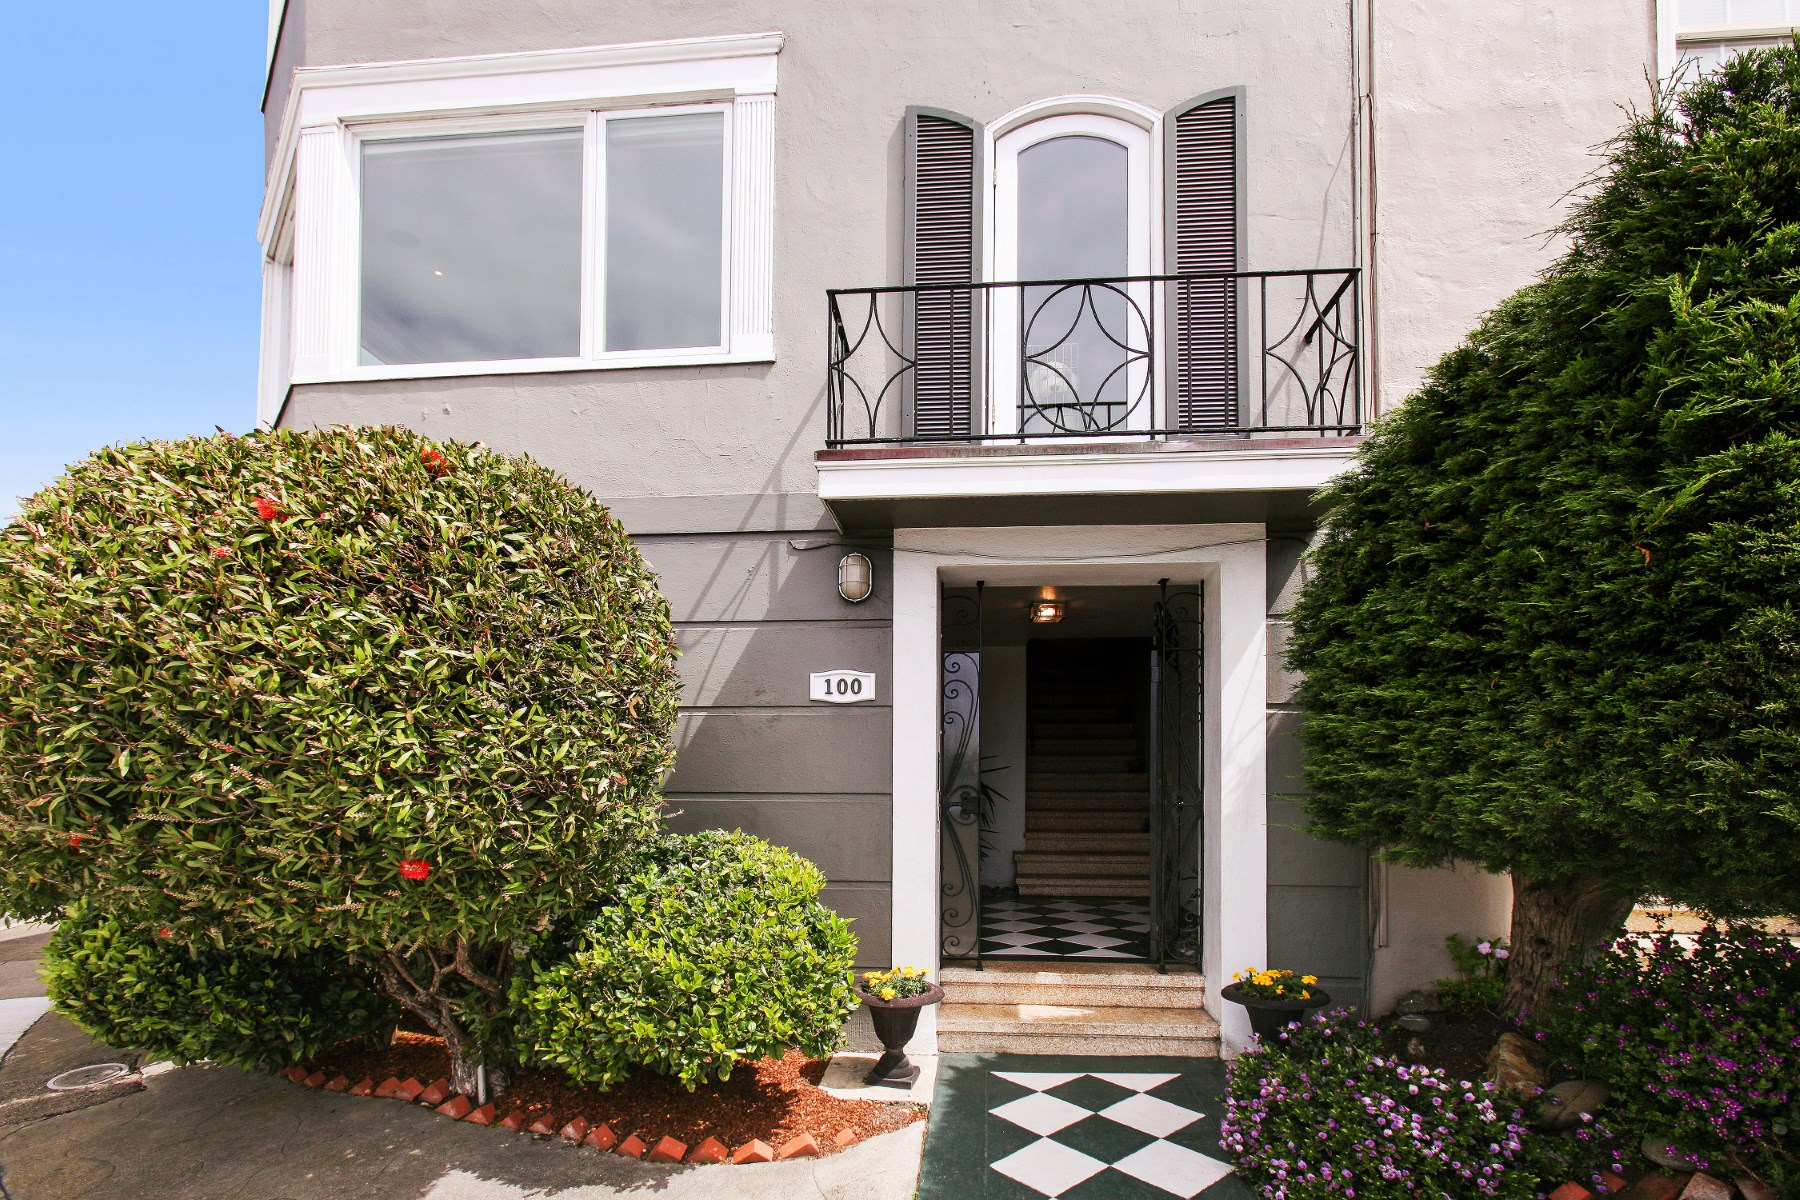 Multi-Family Home for Sale at Beautiful Lone Mountain Home 100-102 Stanyan St San Francisco, California, 94118 United States